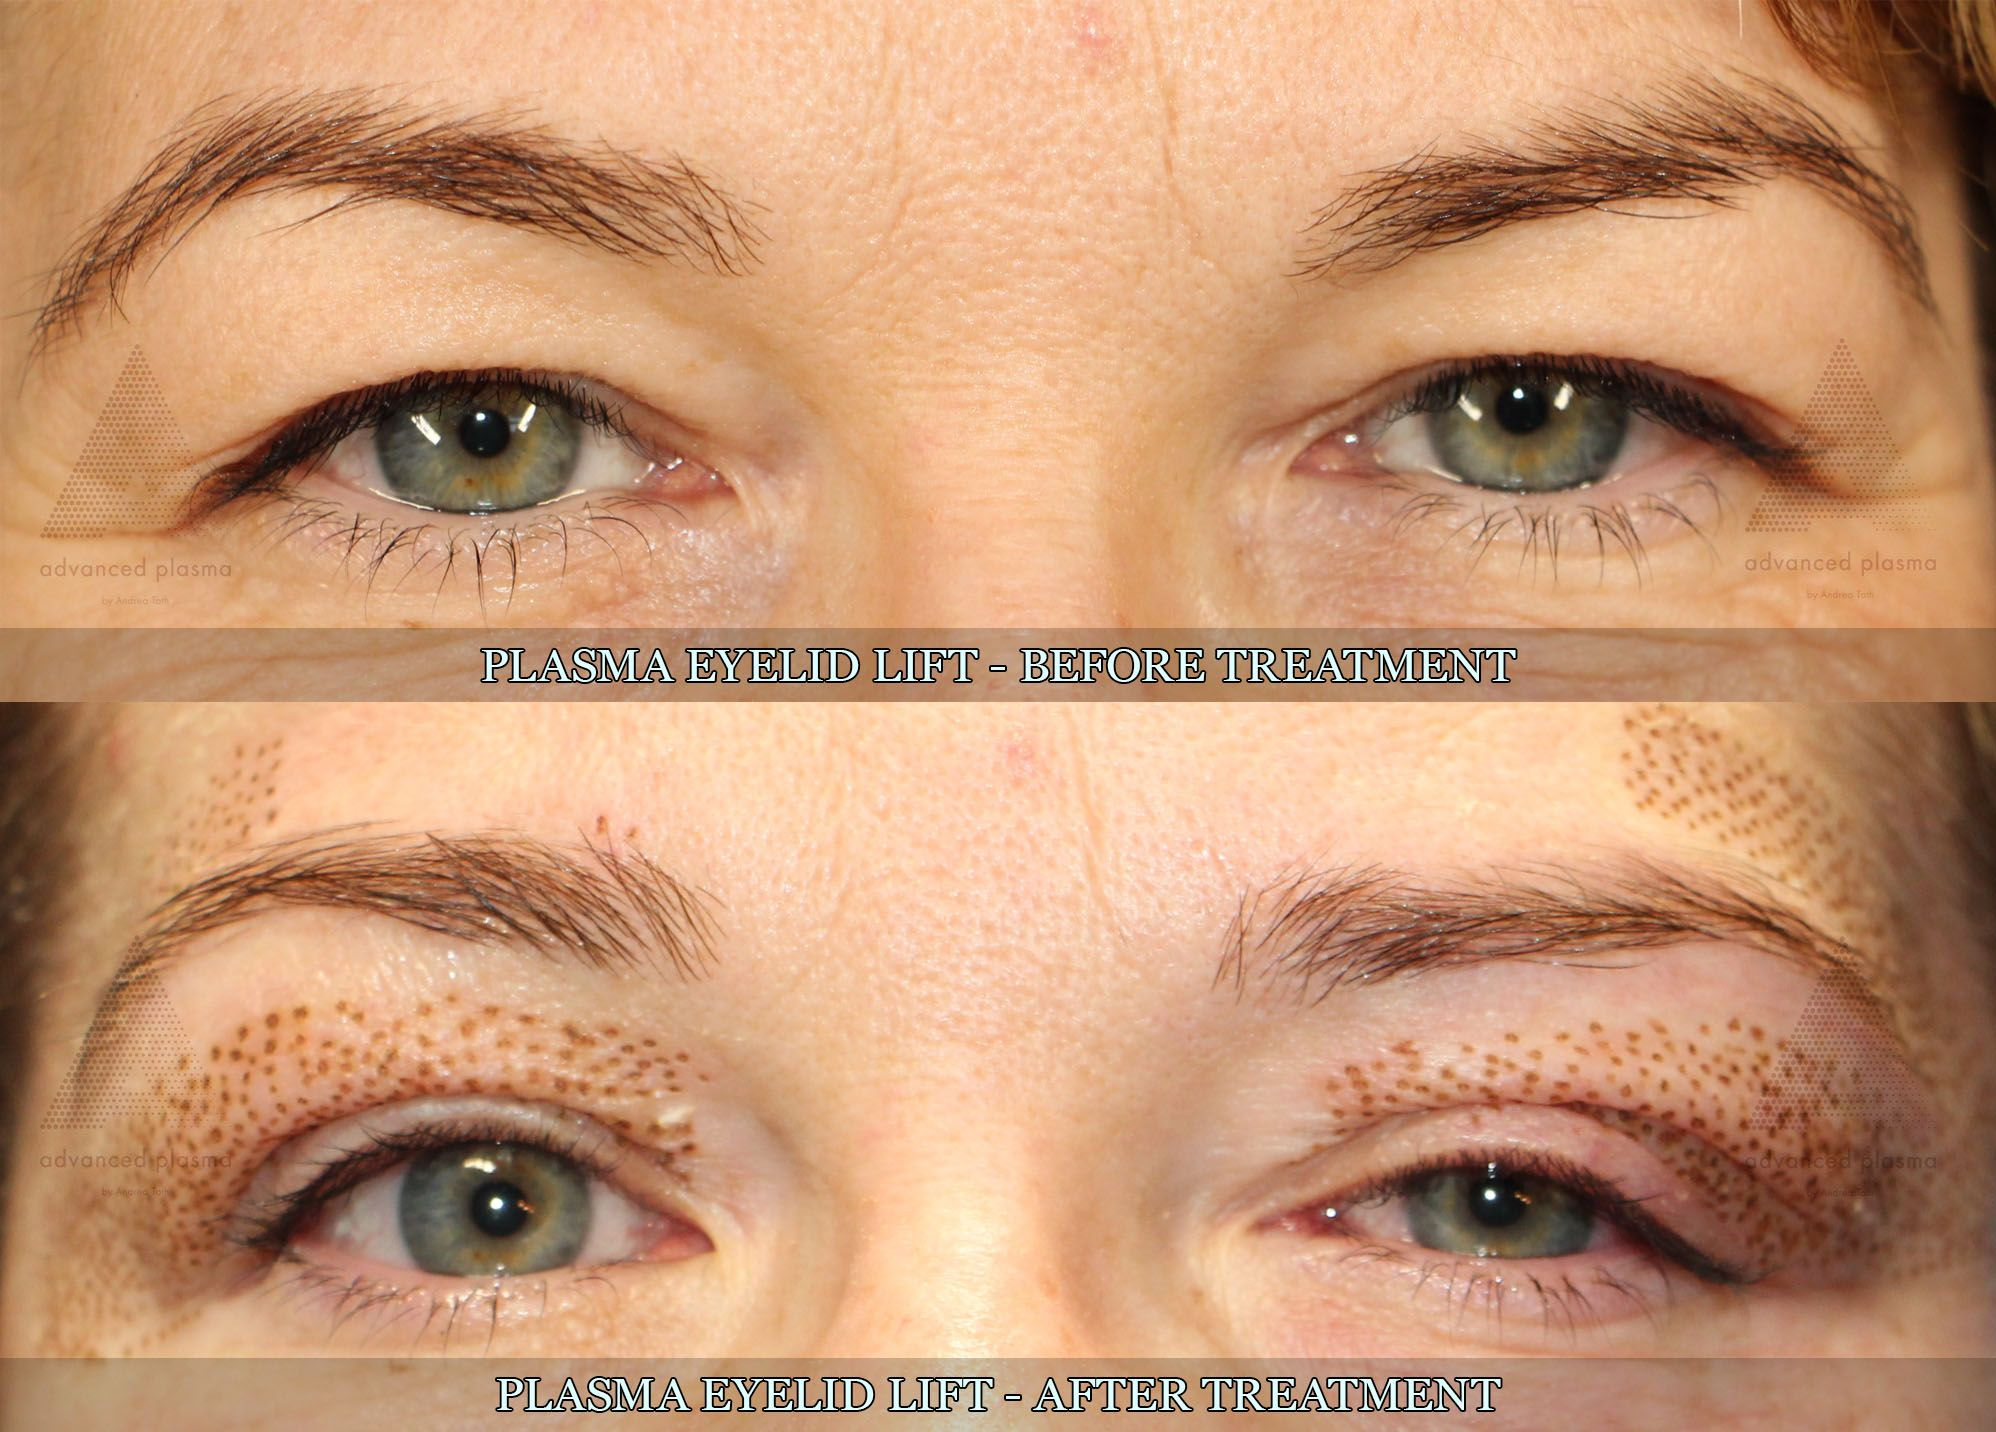 Plasma eyelid lift treatment Before, after pictures More